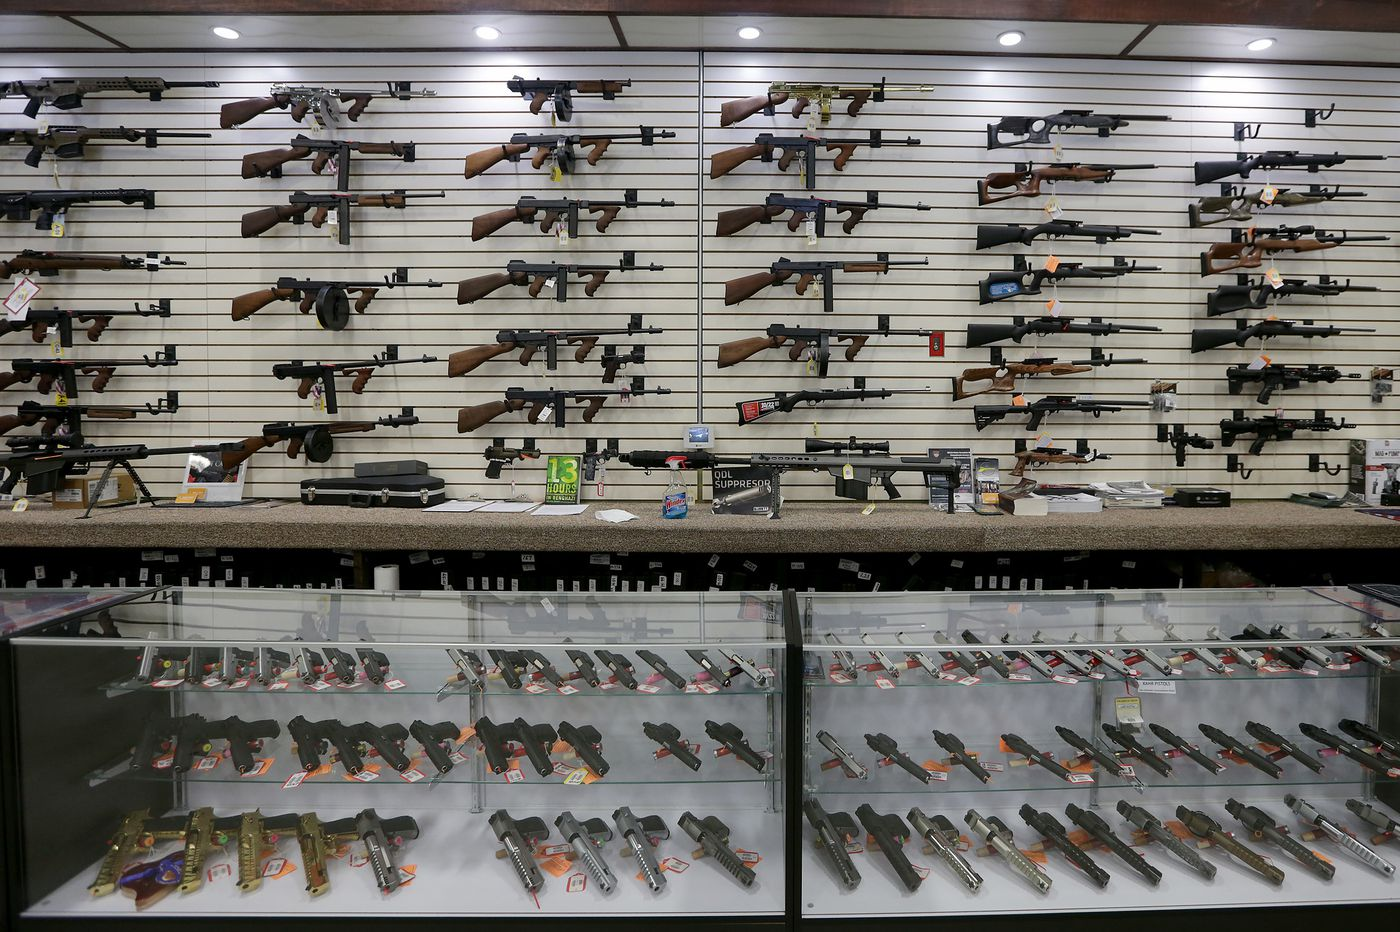 What to know about gun control and safety for the 2018 midterm elections